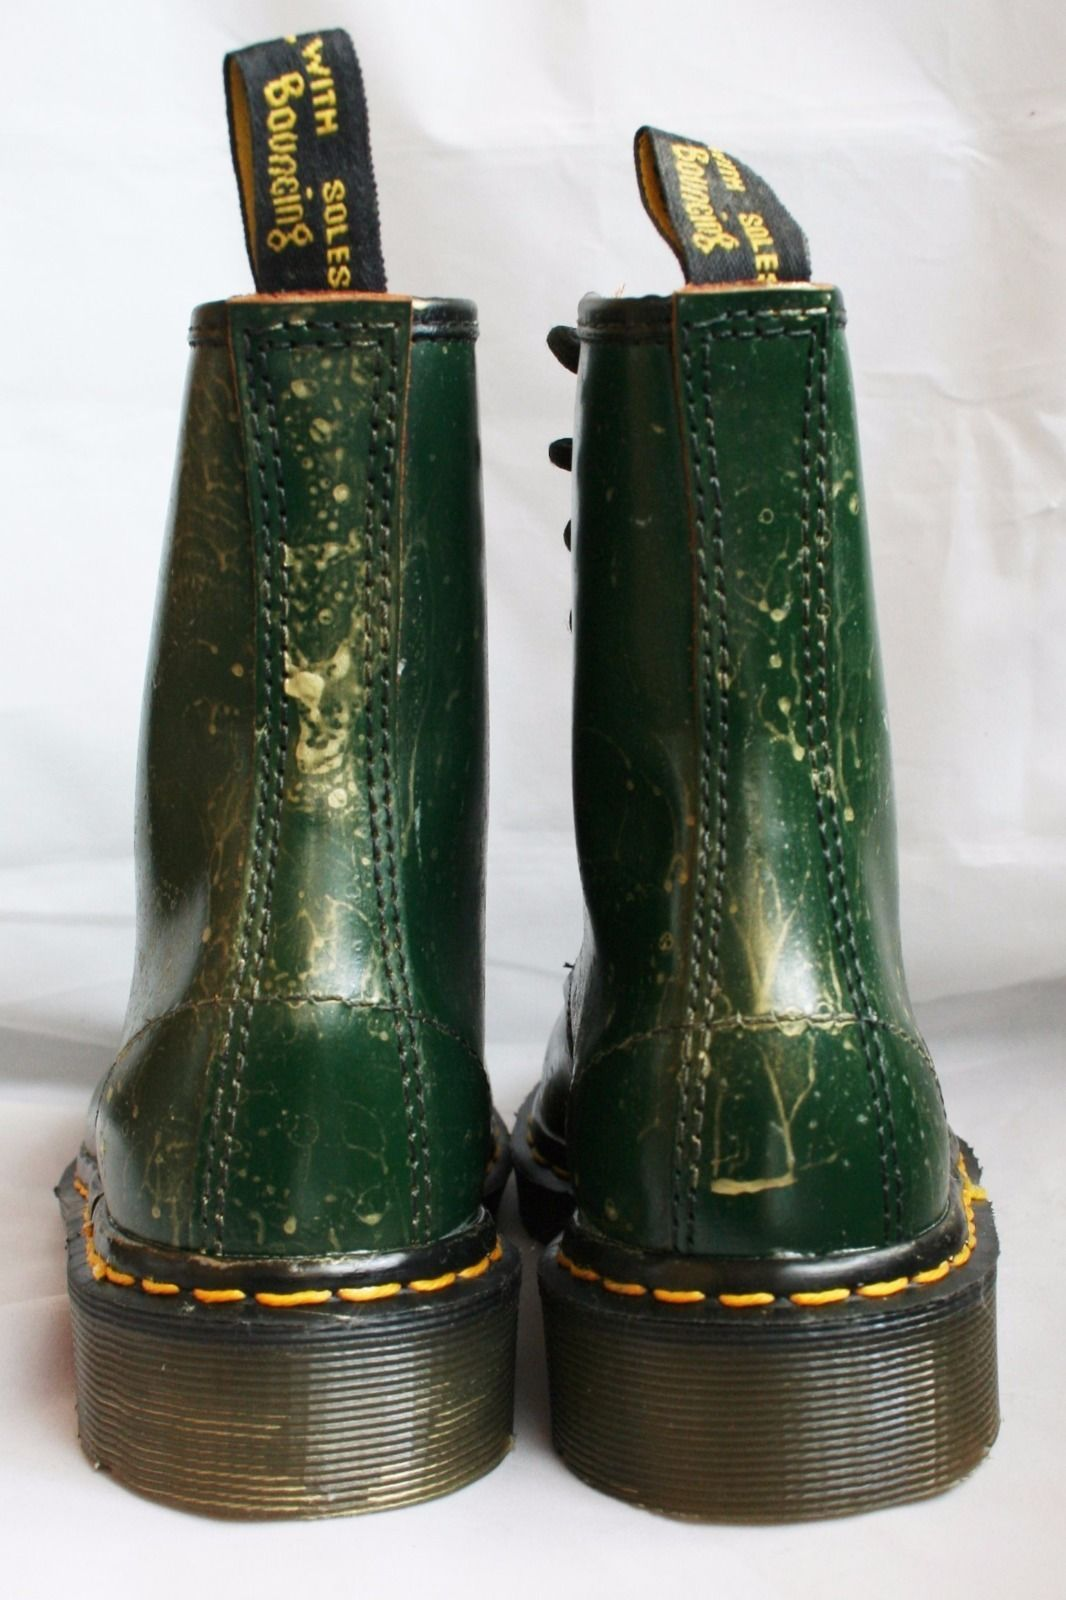 0218d817106 Dr Martens Made in England 1460 Green new w/o box custom gold paint Docs  size 3 in Clothes, Shoes & Accessories, Women's Shoes, Boots | eBay!